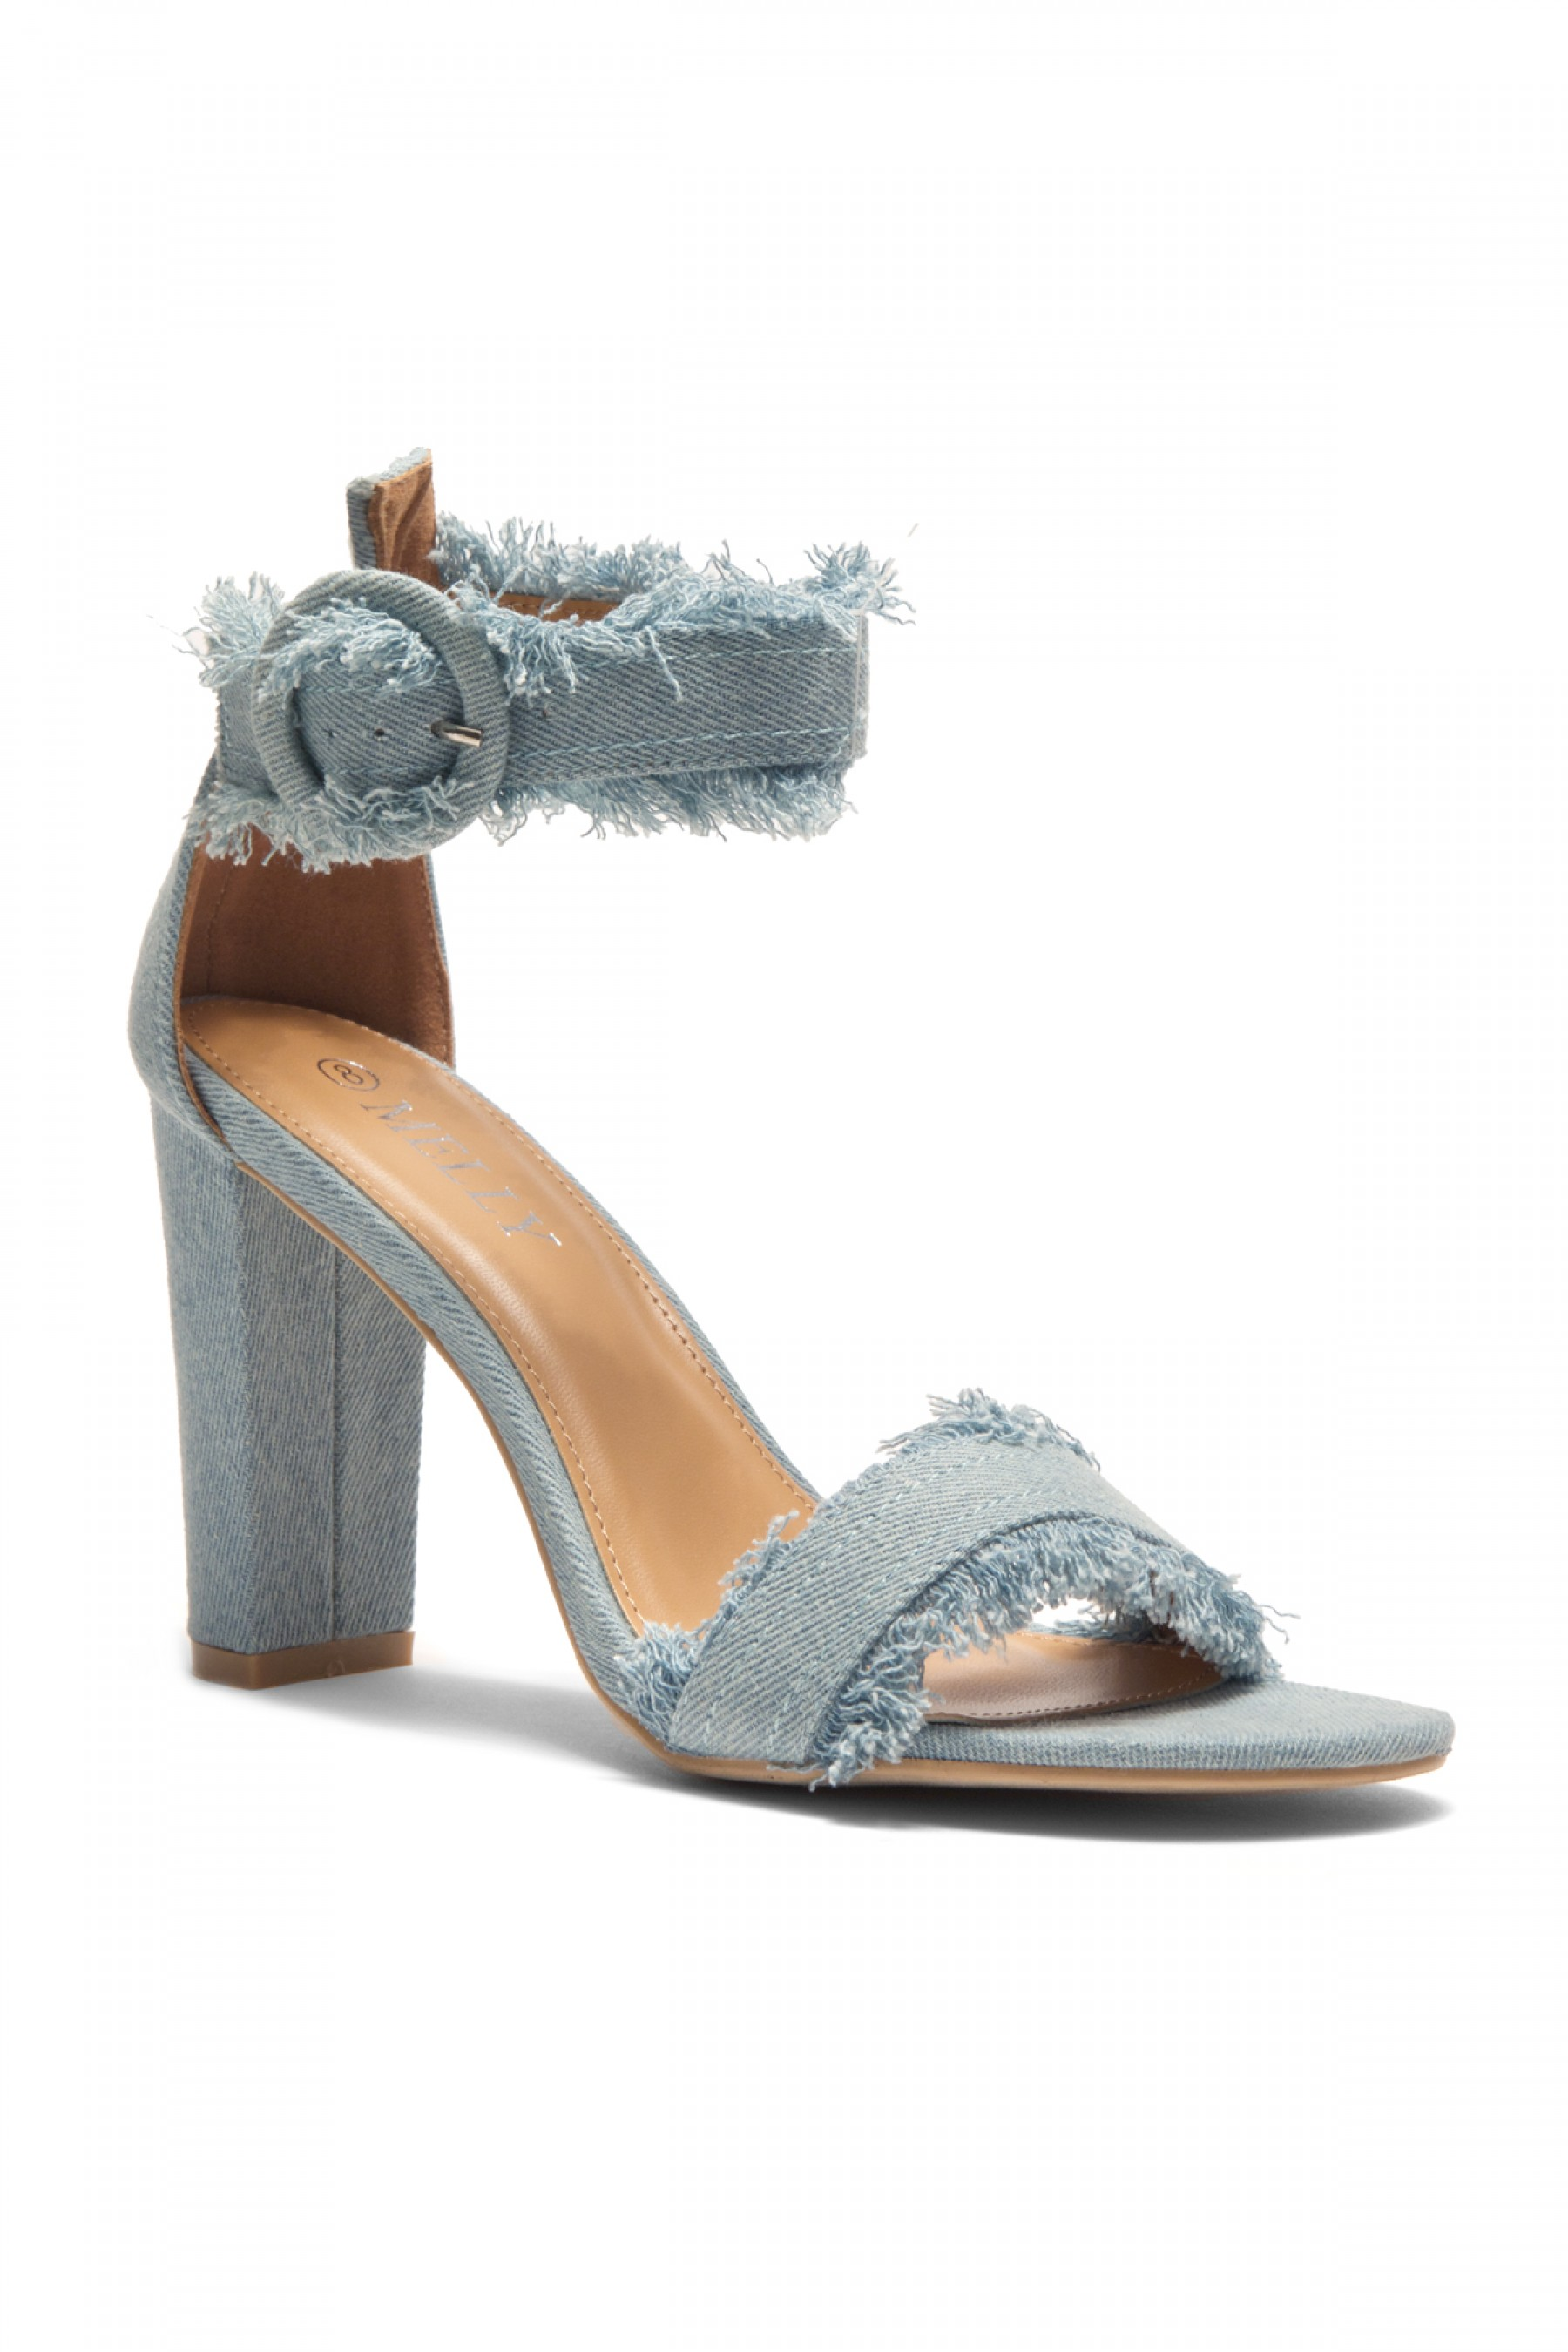 HerStyle Karrissa Effy frayed hem barely there chunky heels in light blue denim